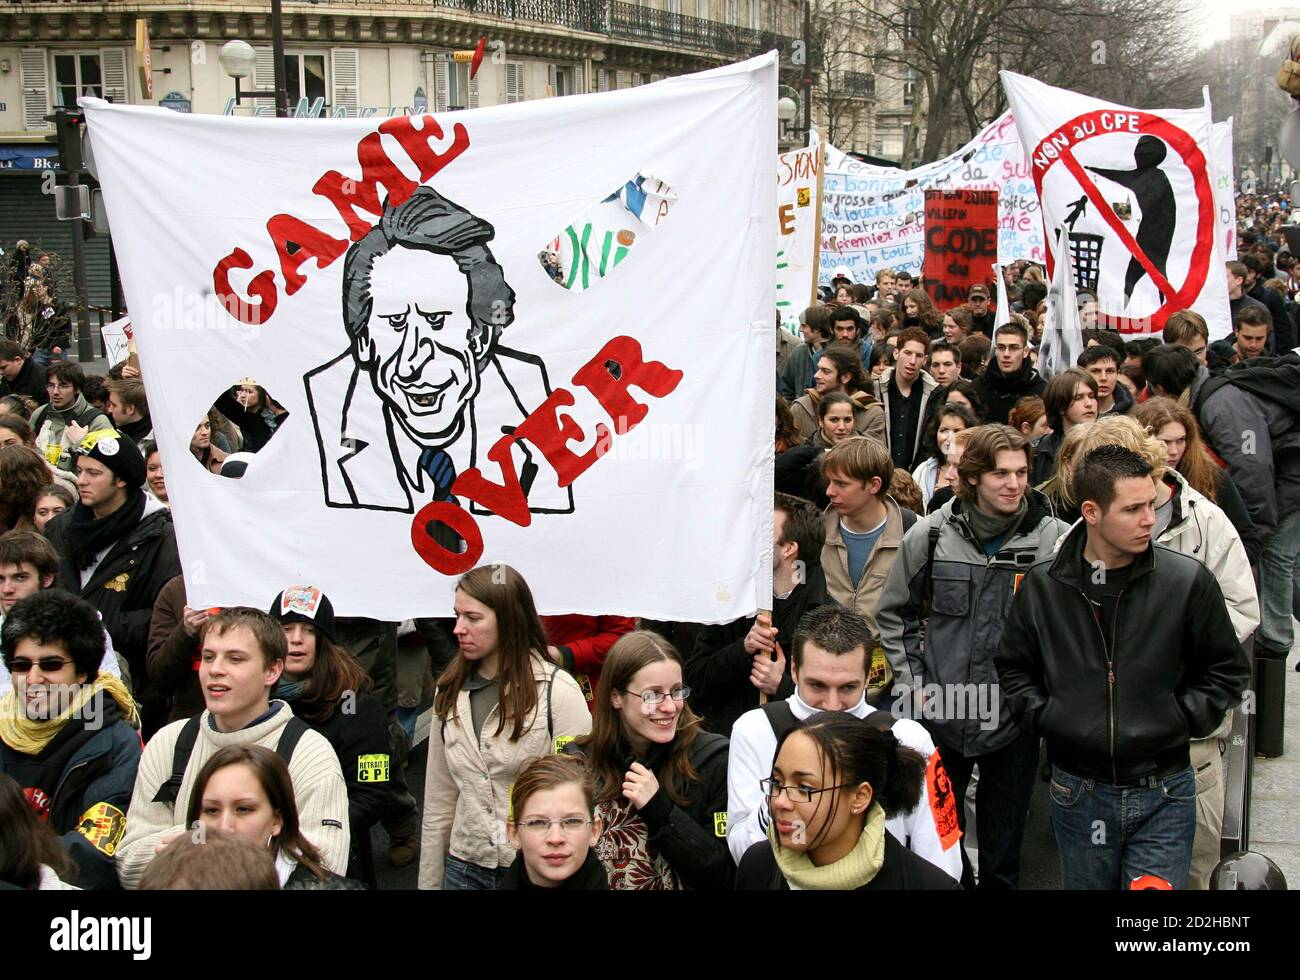 French students shout slogans as they carry a banner with the caricature of France's Prime Minister Dominique de Villepin during a protest march demanding the government to scrap a contentious youth jobs law in Paris March 23, 2006. Stock Photo